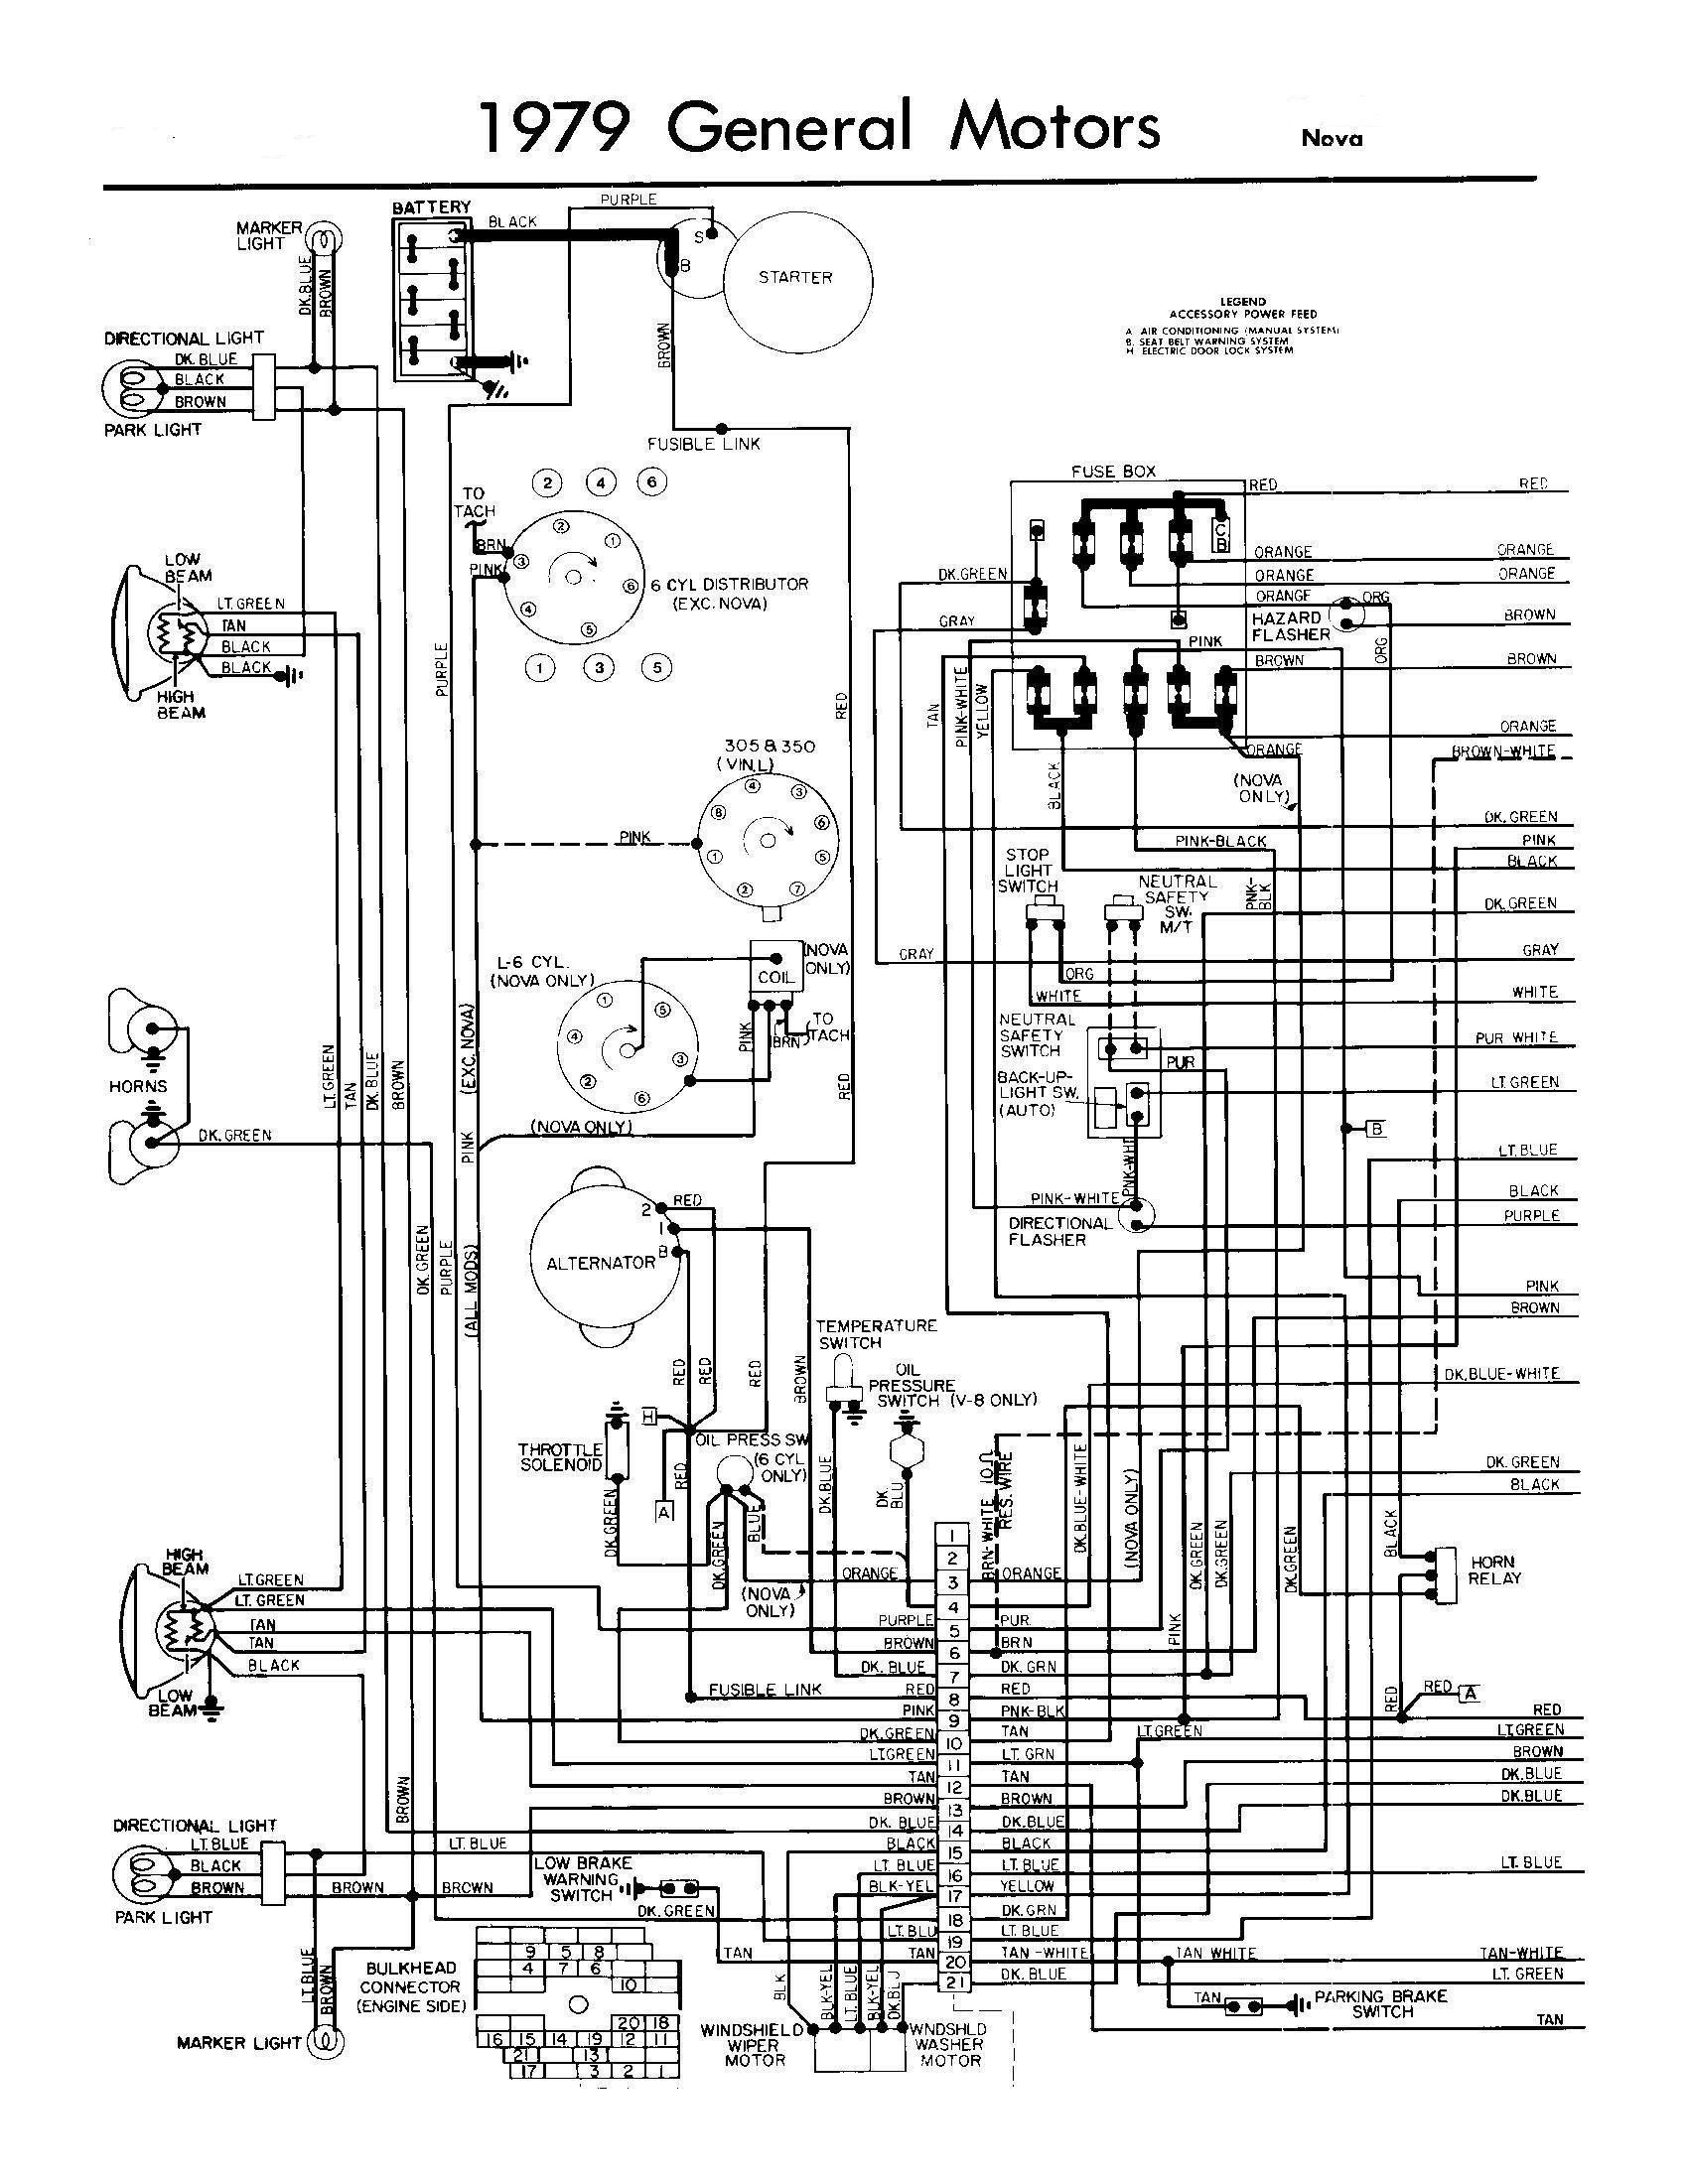 Diagram Additionally Chevy Truck Wiring Diagram On 1972 Chevy 350 Regarding 1972 Chevy Truck Wiring Diagram Chevy Trucks 1979 Chevy Truck 79 Chevy Truck